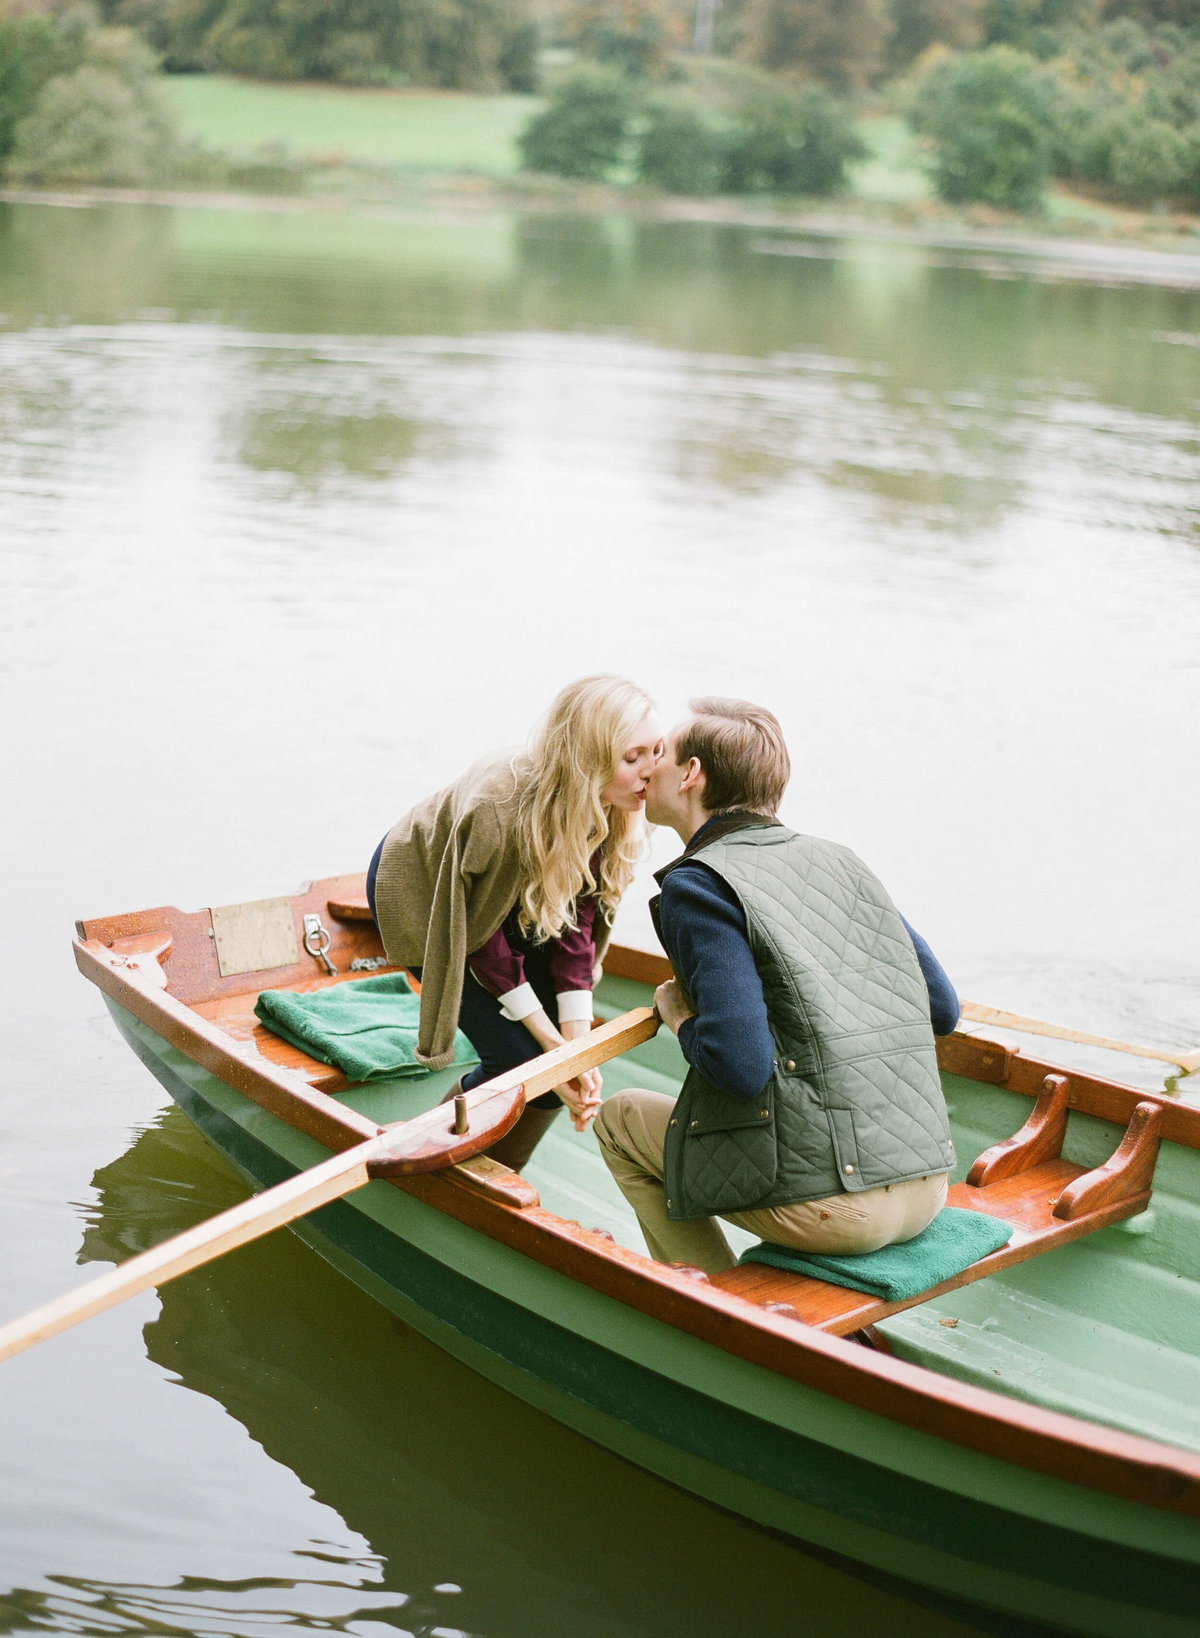 15-KTMerry-weddings-Ireland-kissing-boat